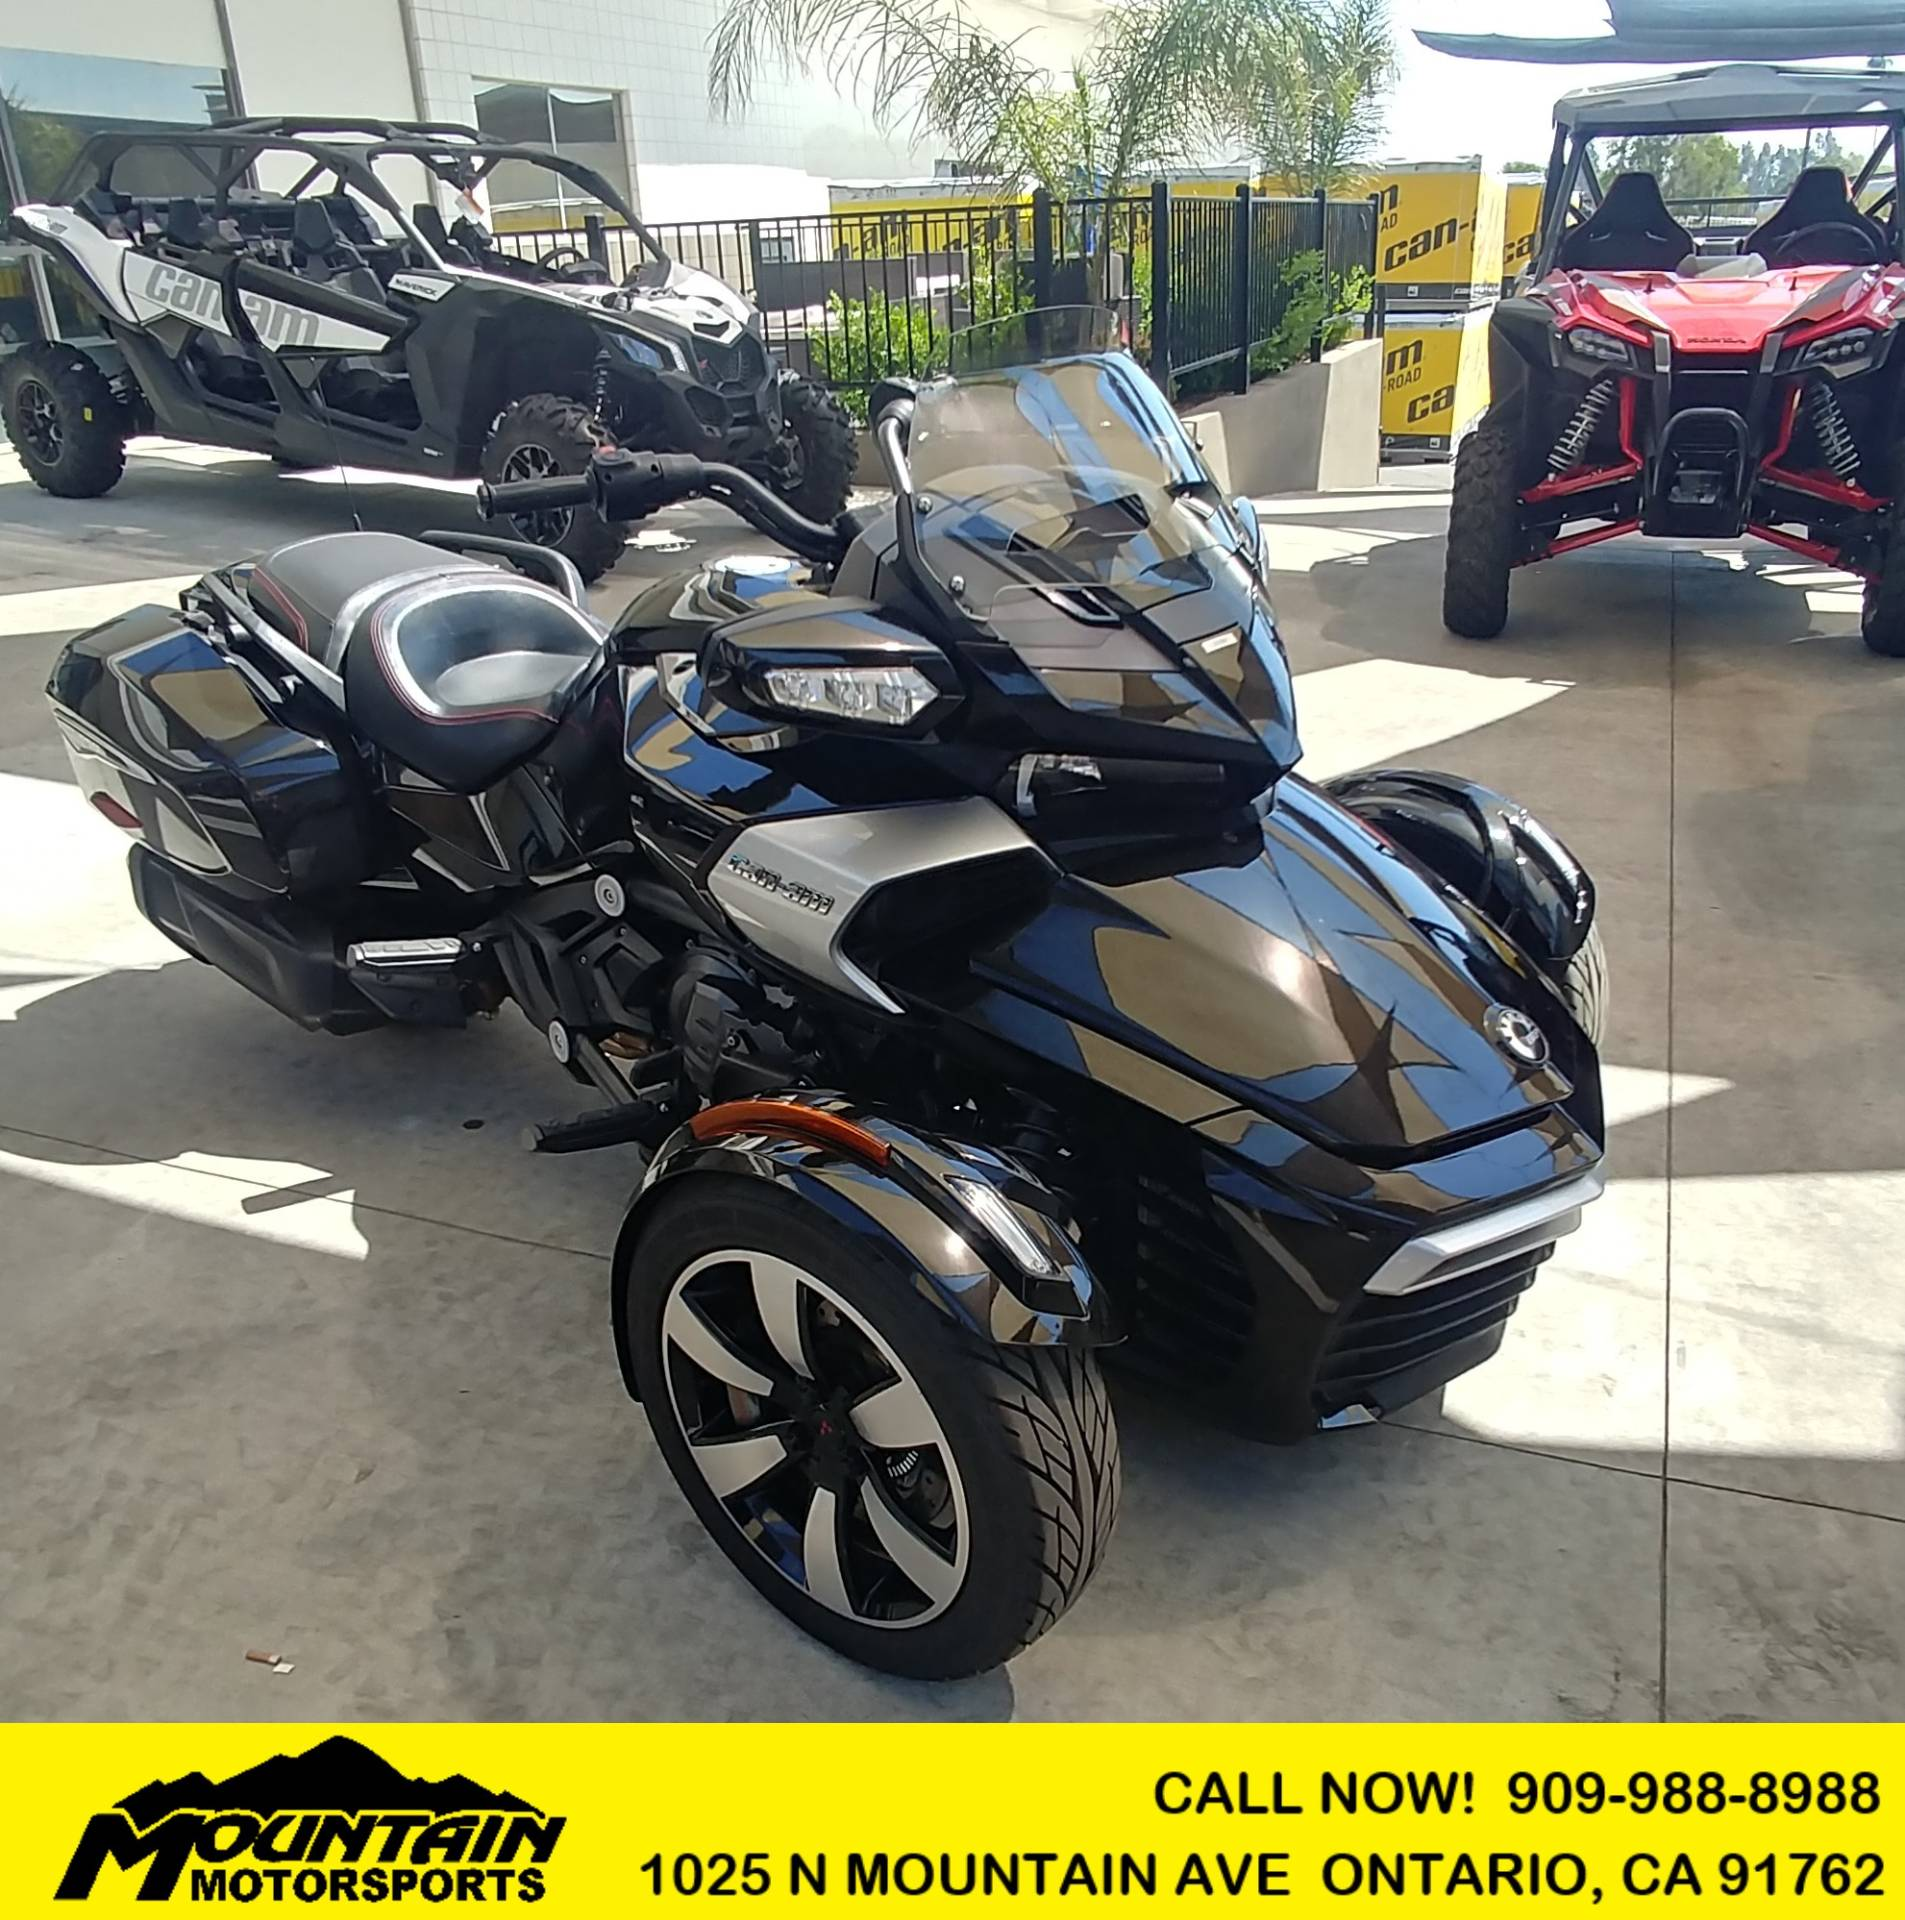 2016 Can-Am Spyder F3-T SE6 w/ Audio System in Ontario, California - Photo 1